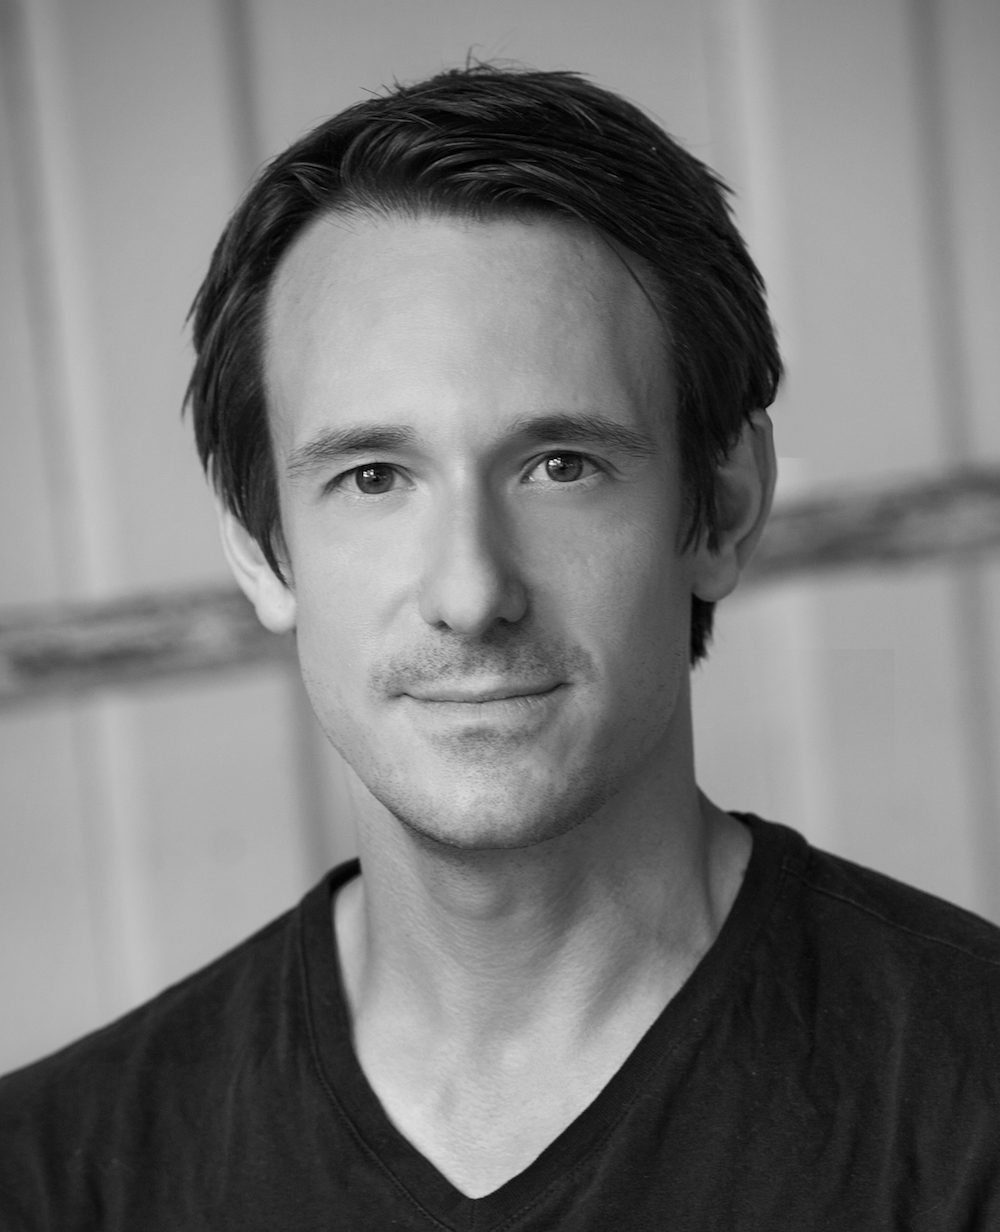 James Sofranko, choreographer